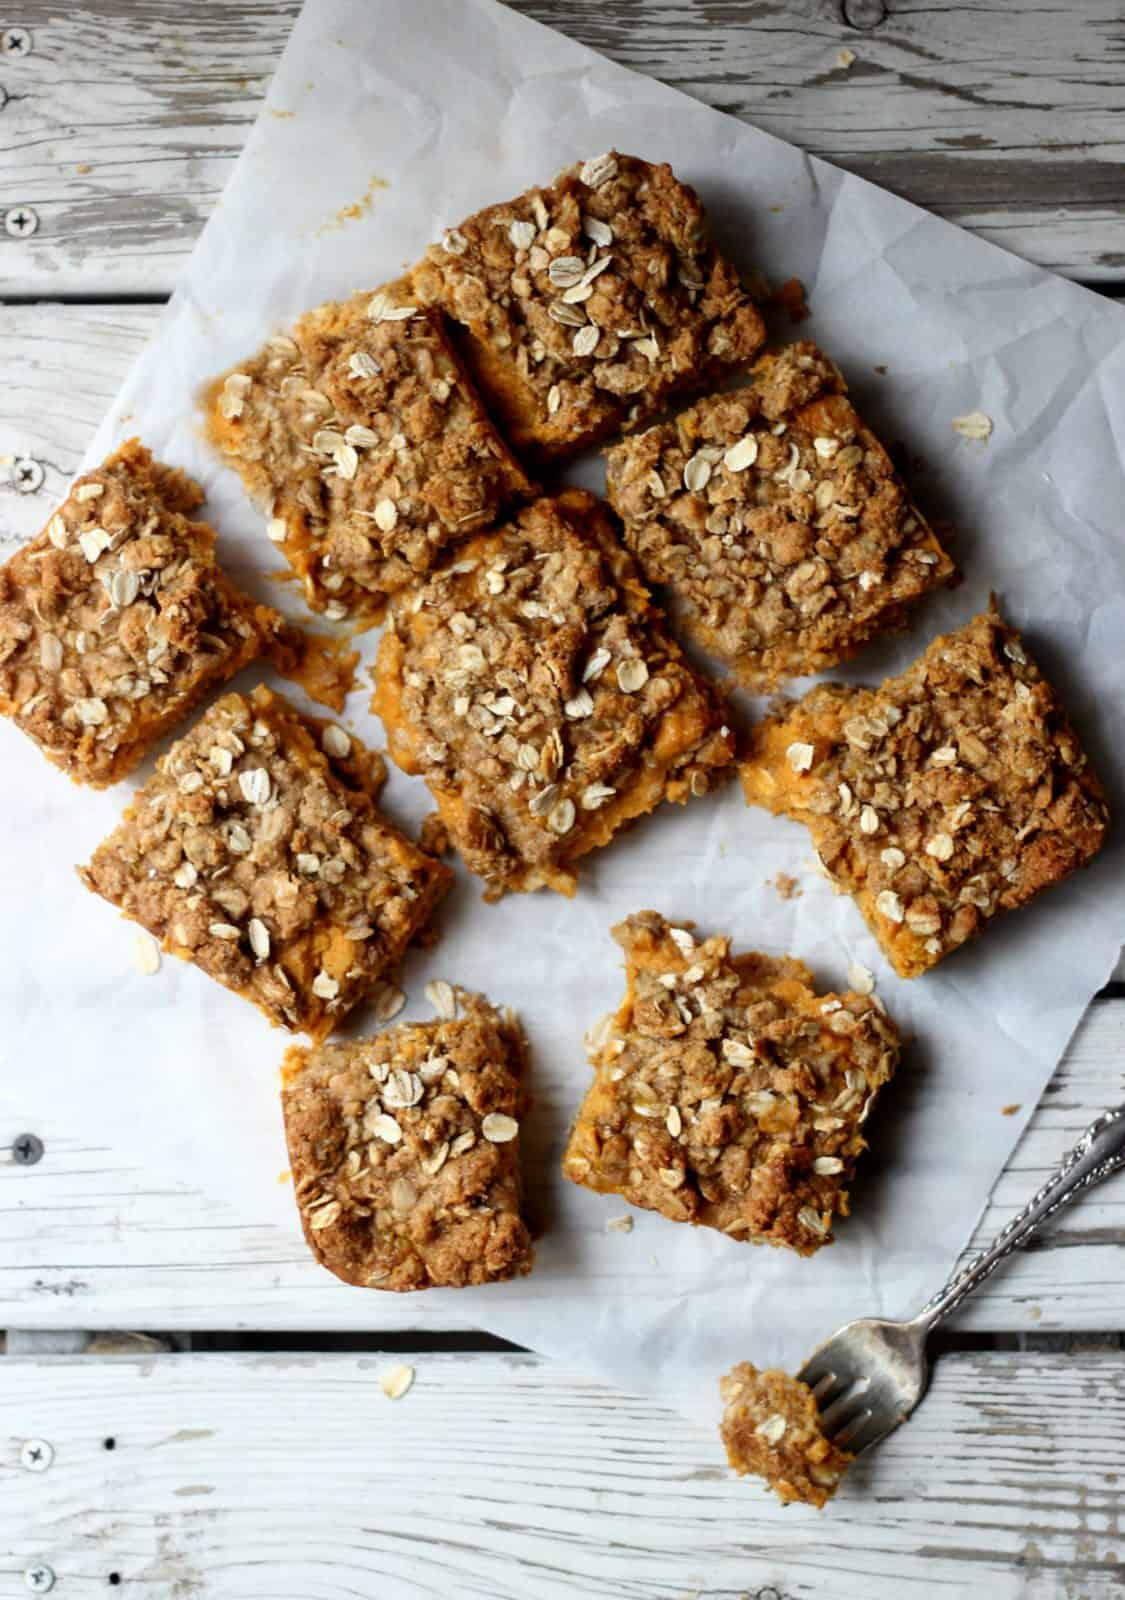 Overhead shot of pumpkin crumb bars on white parchment paper.